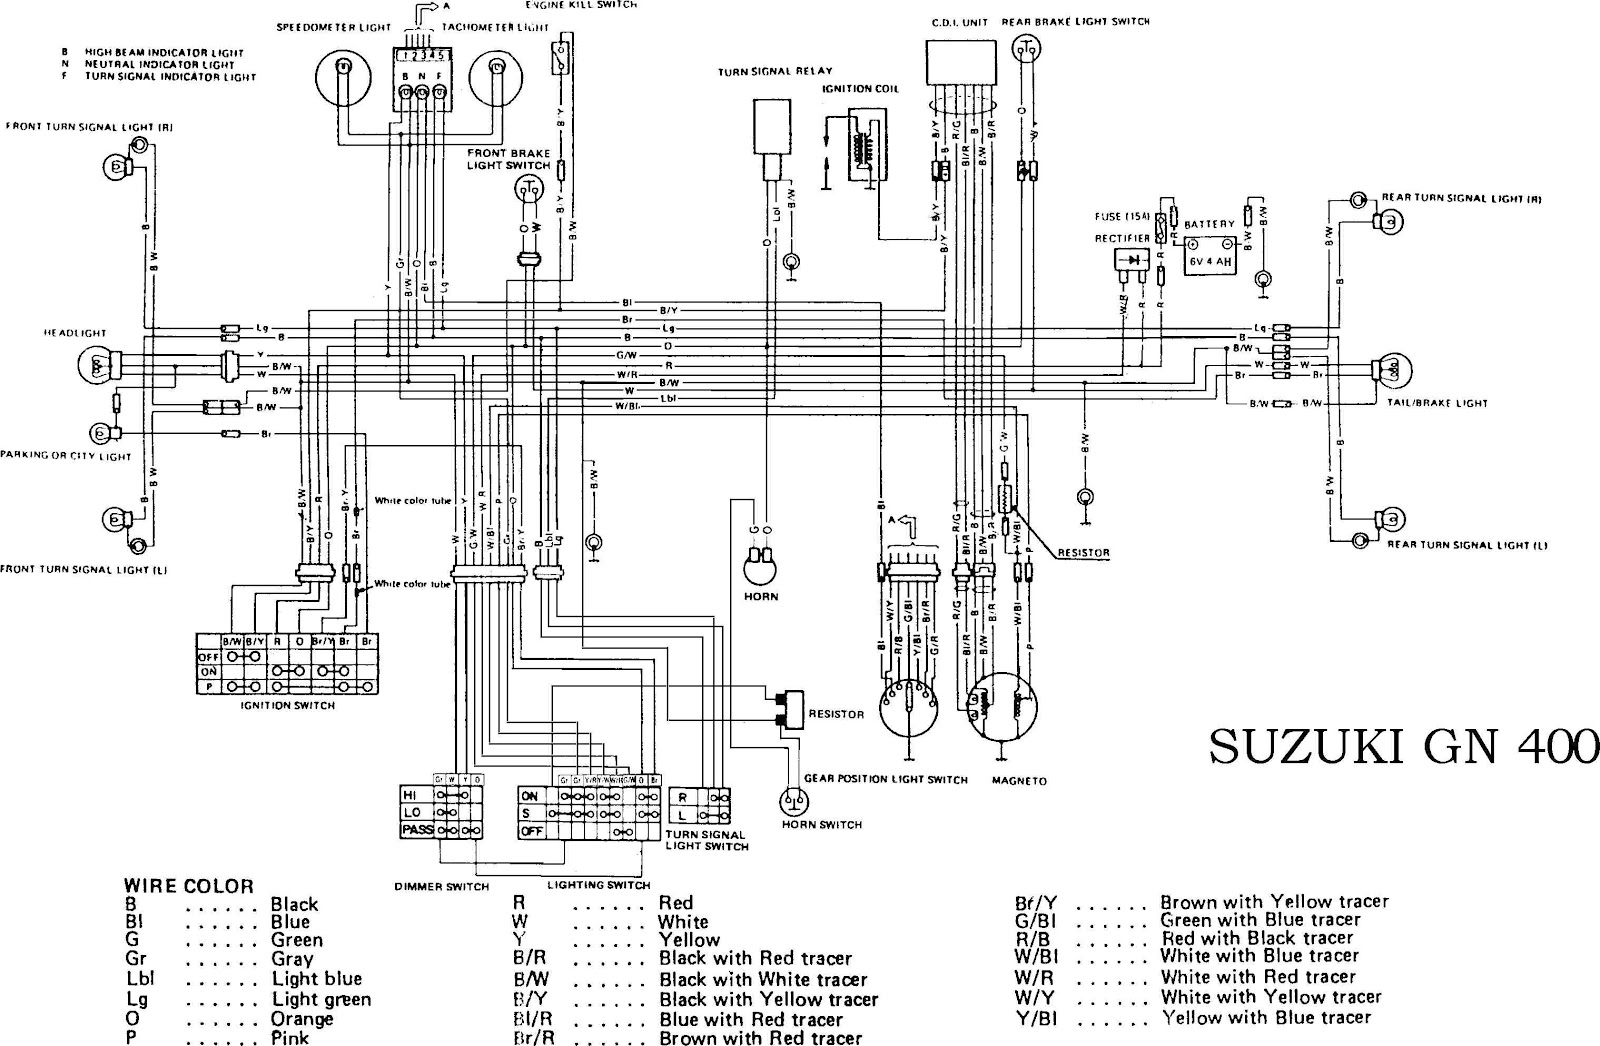 Wire Diagram For A 1995 Suzuki Intruder 800 43 Wiring 2001 Diagrams Gn400 Motorcycle Complete Electrical Diagramresize